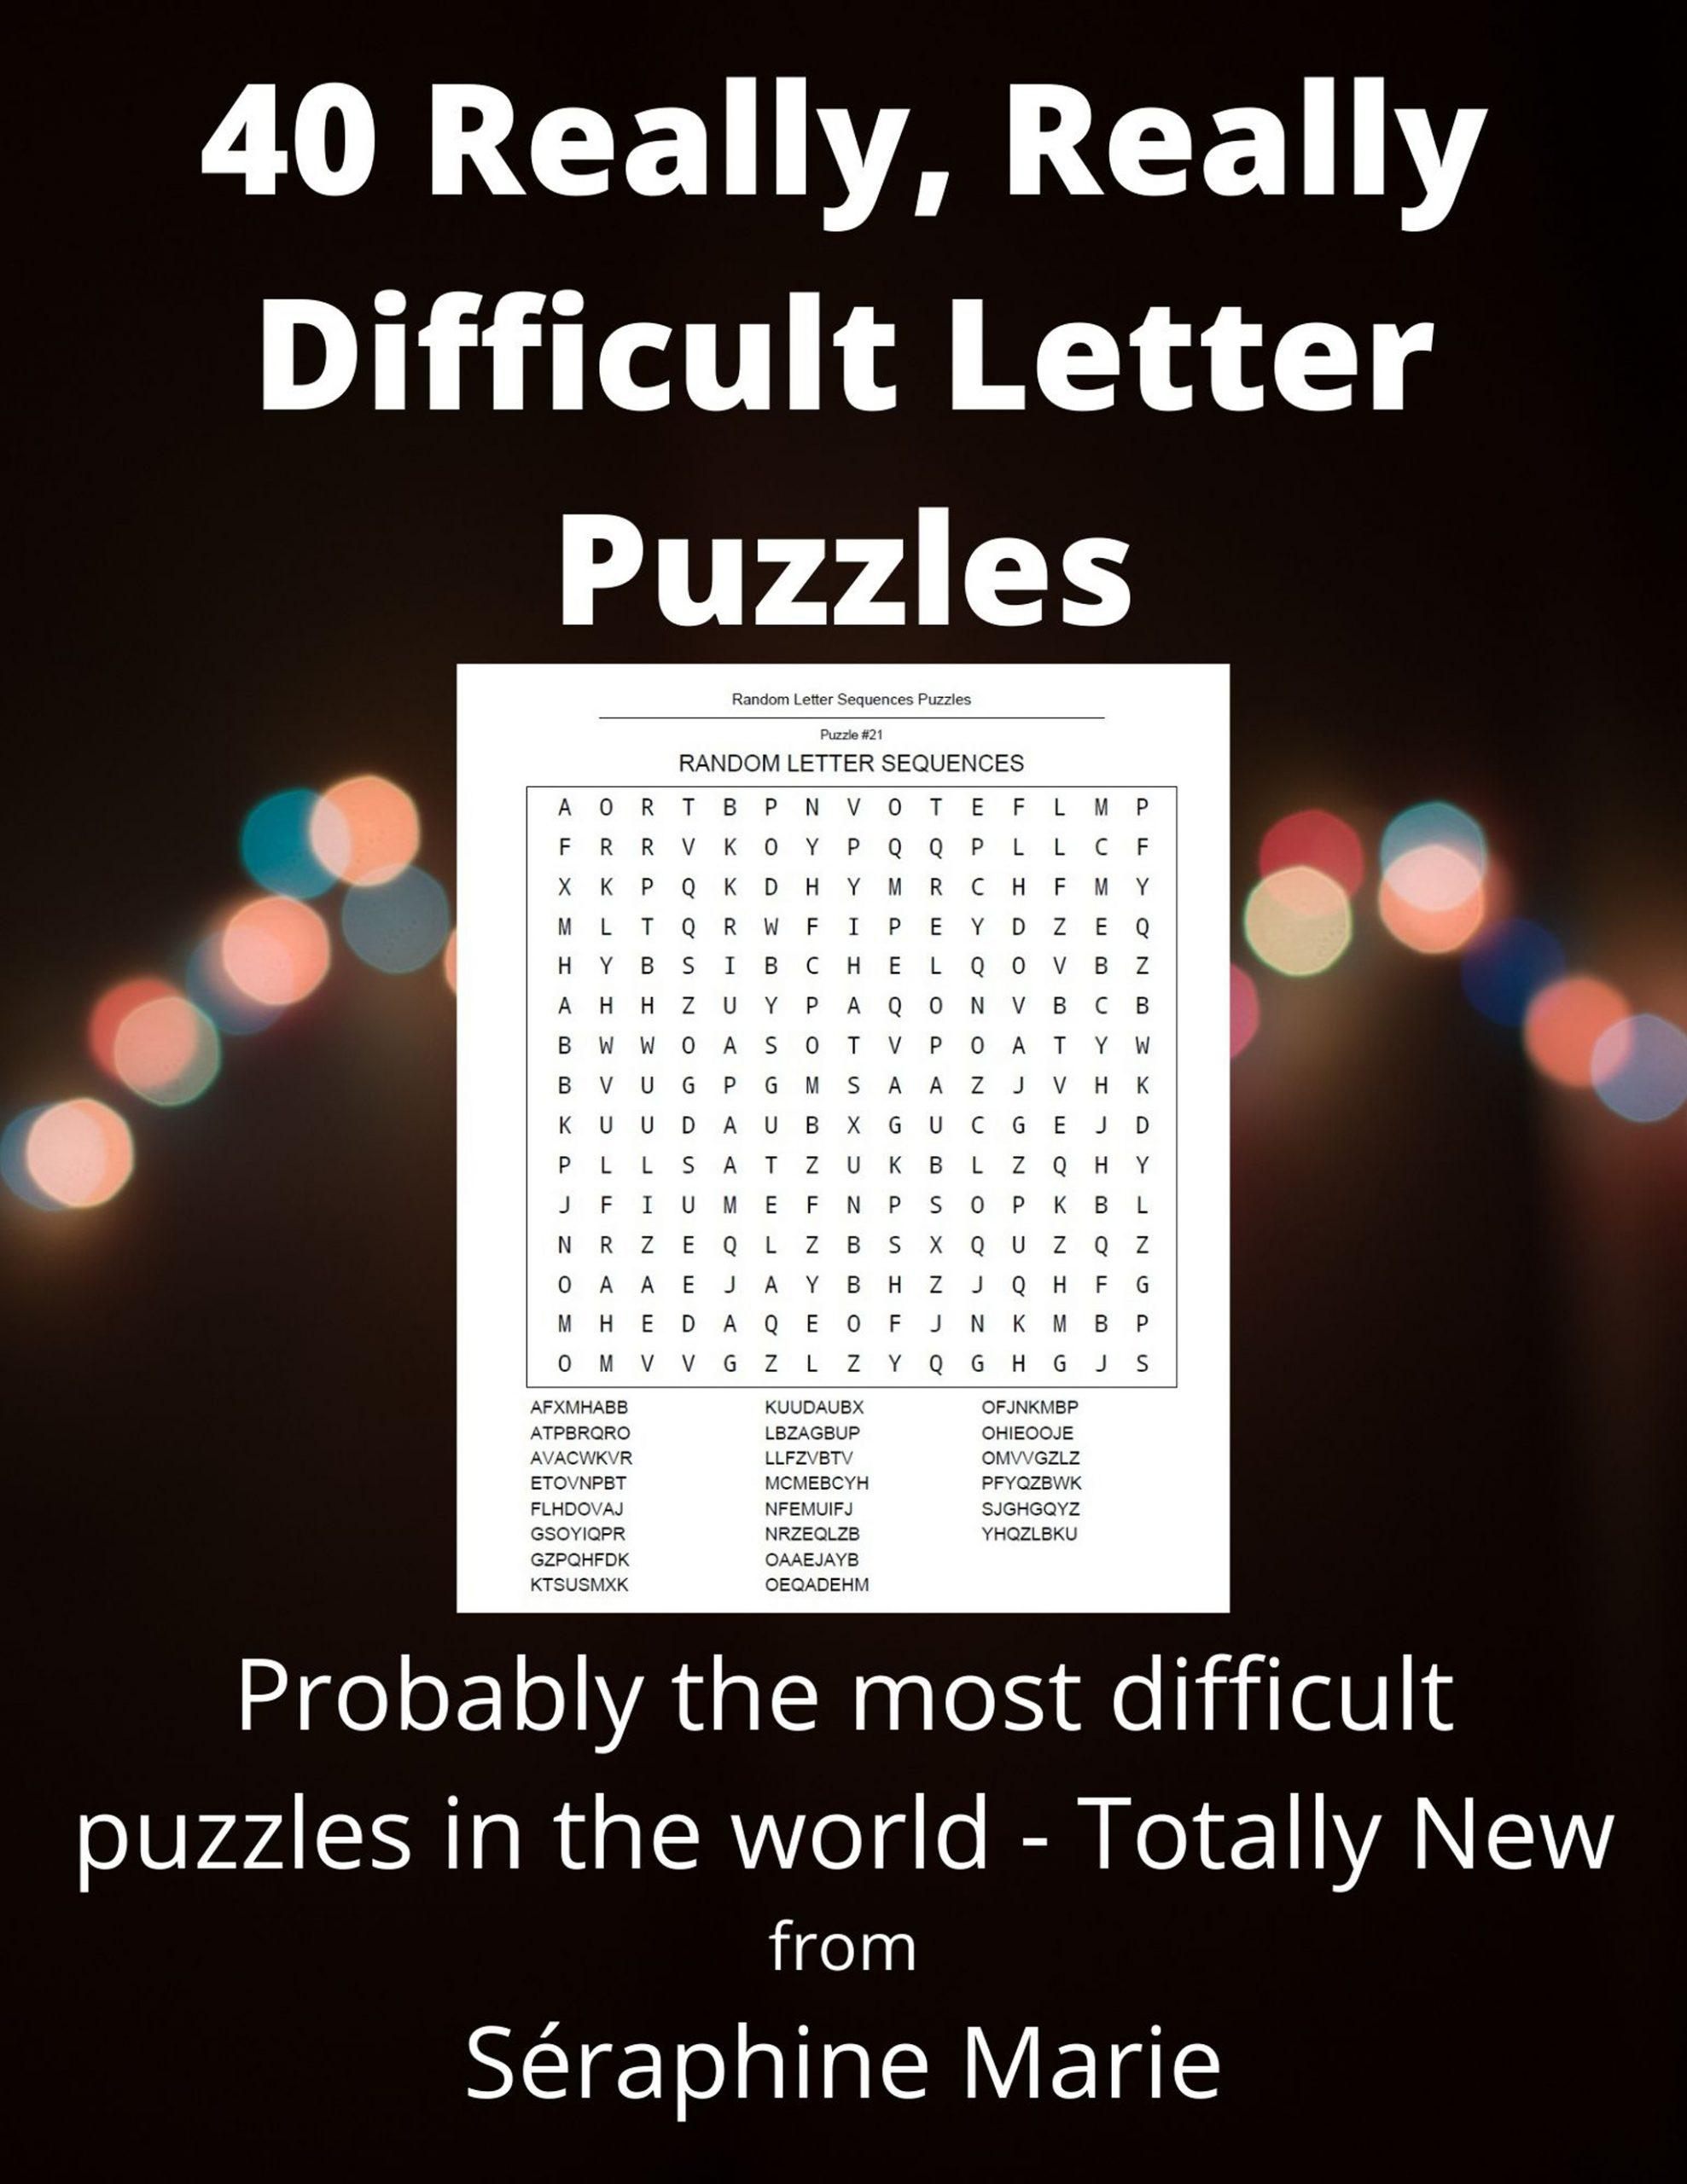 40 Really, Really Difficult Letter Puzzles